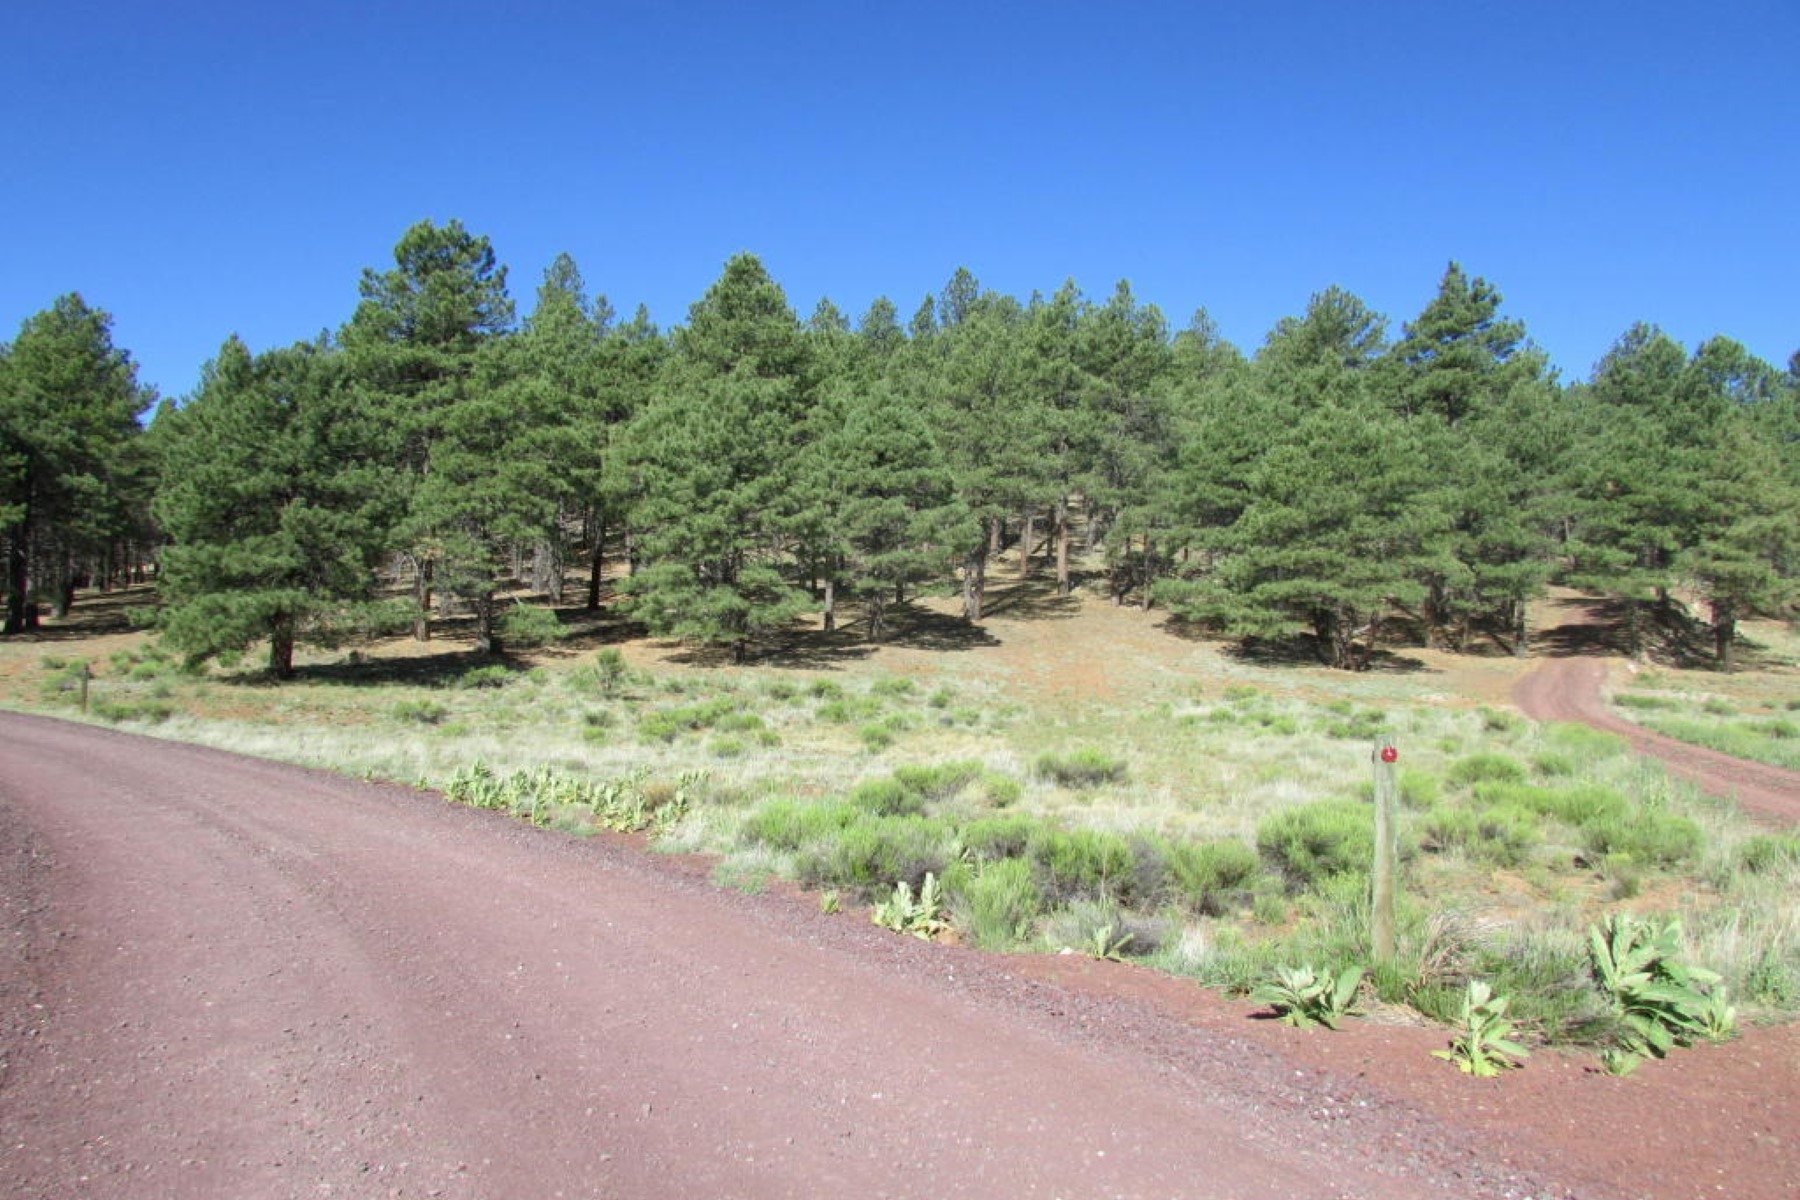 Land for Sale at 2.5 acre parcel captures the essence of the dream home site location 8b W Antoinette Way Flagstaff, Arizona, 86001 United States